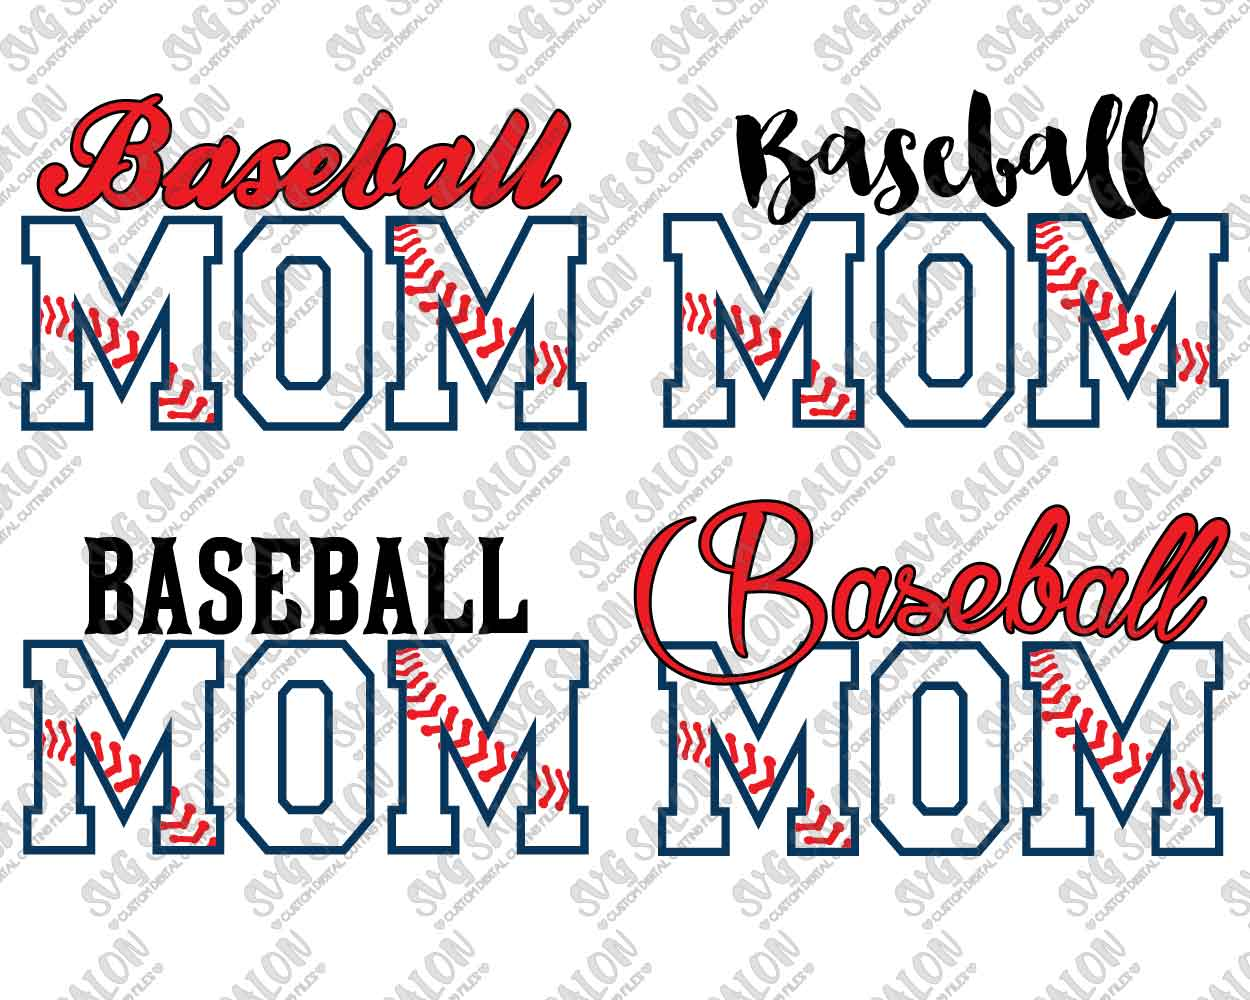 Baseball Mom Layered Pattern Custom DIY Iron On Vinyl Shirt Decal Cutting  File Set in SVG, EPS, DXF, JPEG, and PNG Format.